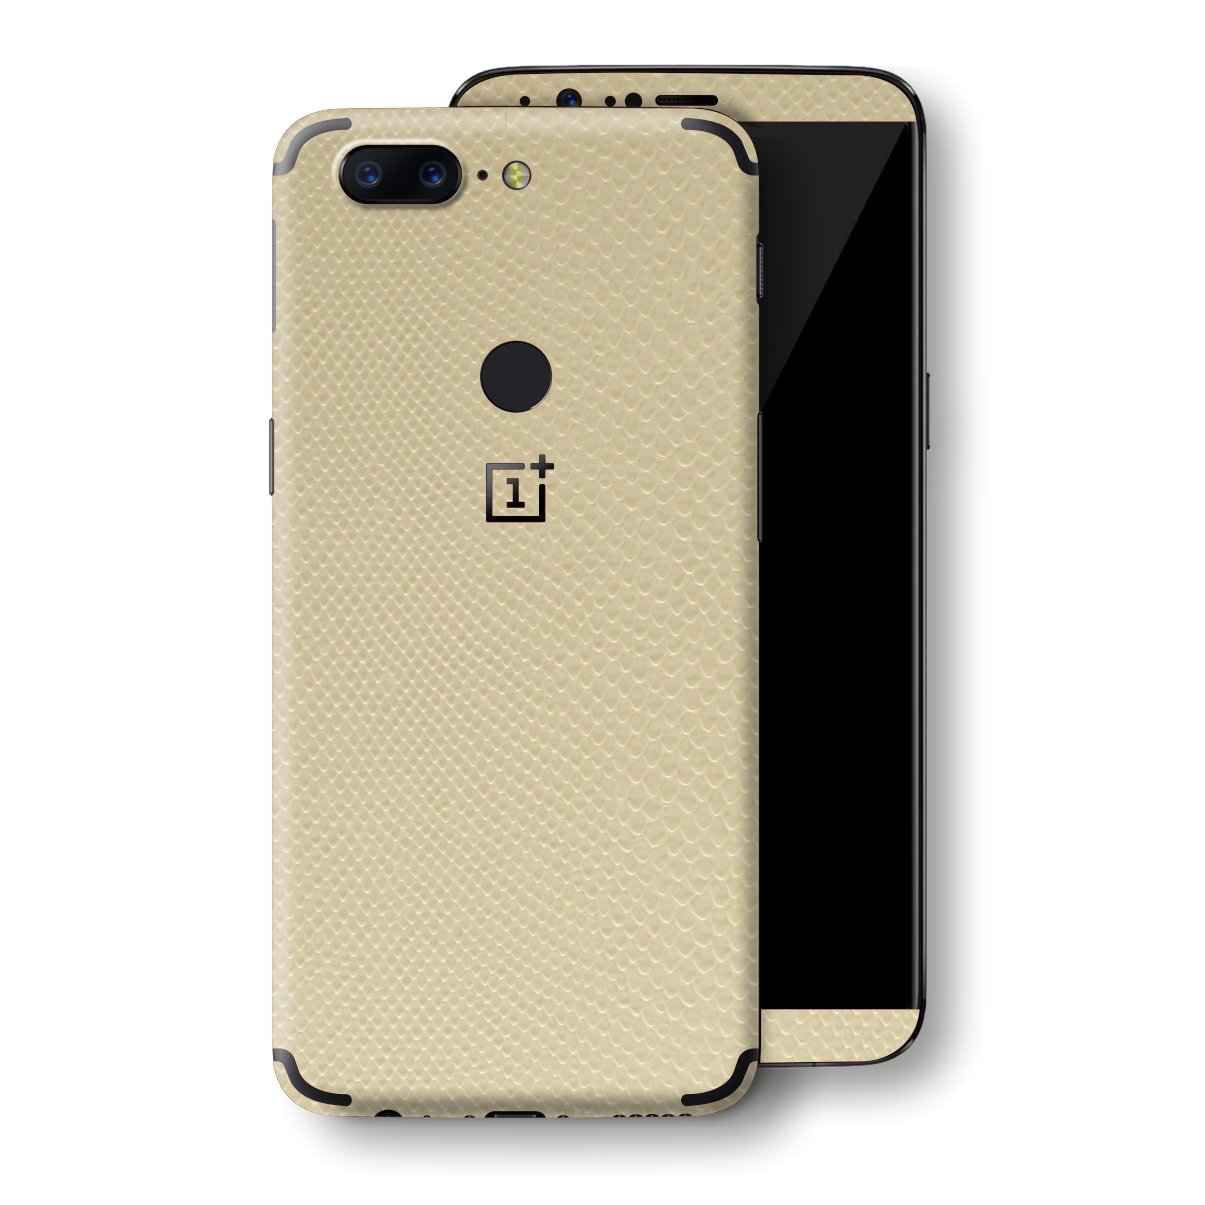 OnePlus 5T Beige Mamba Snake Leather Skin, Decal, Wrap, Protector, Cover by EasySkinz | EasySkinz.com